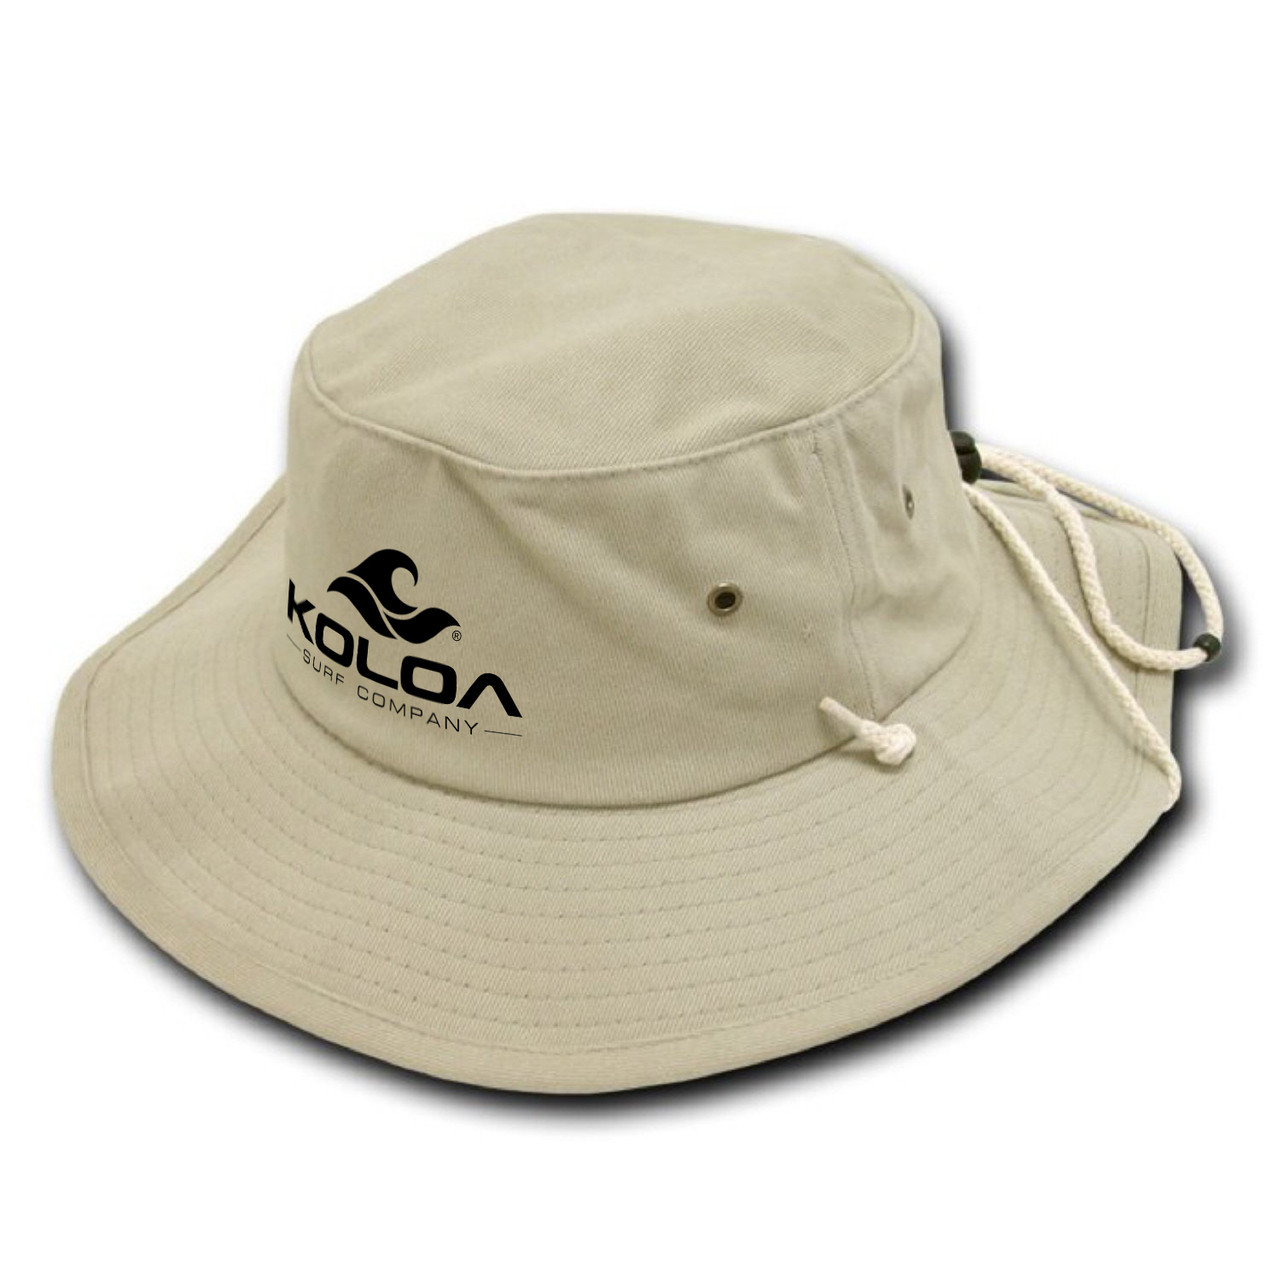 Koloa Surf Co. Aussie Style Outback Drawstring Adult Bucket Hat d1db0541b50